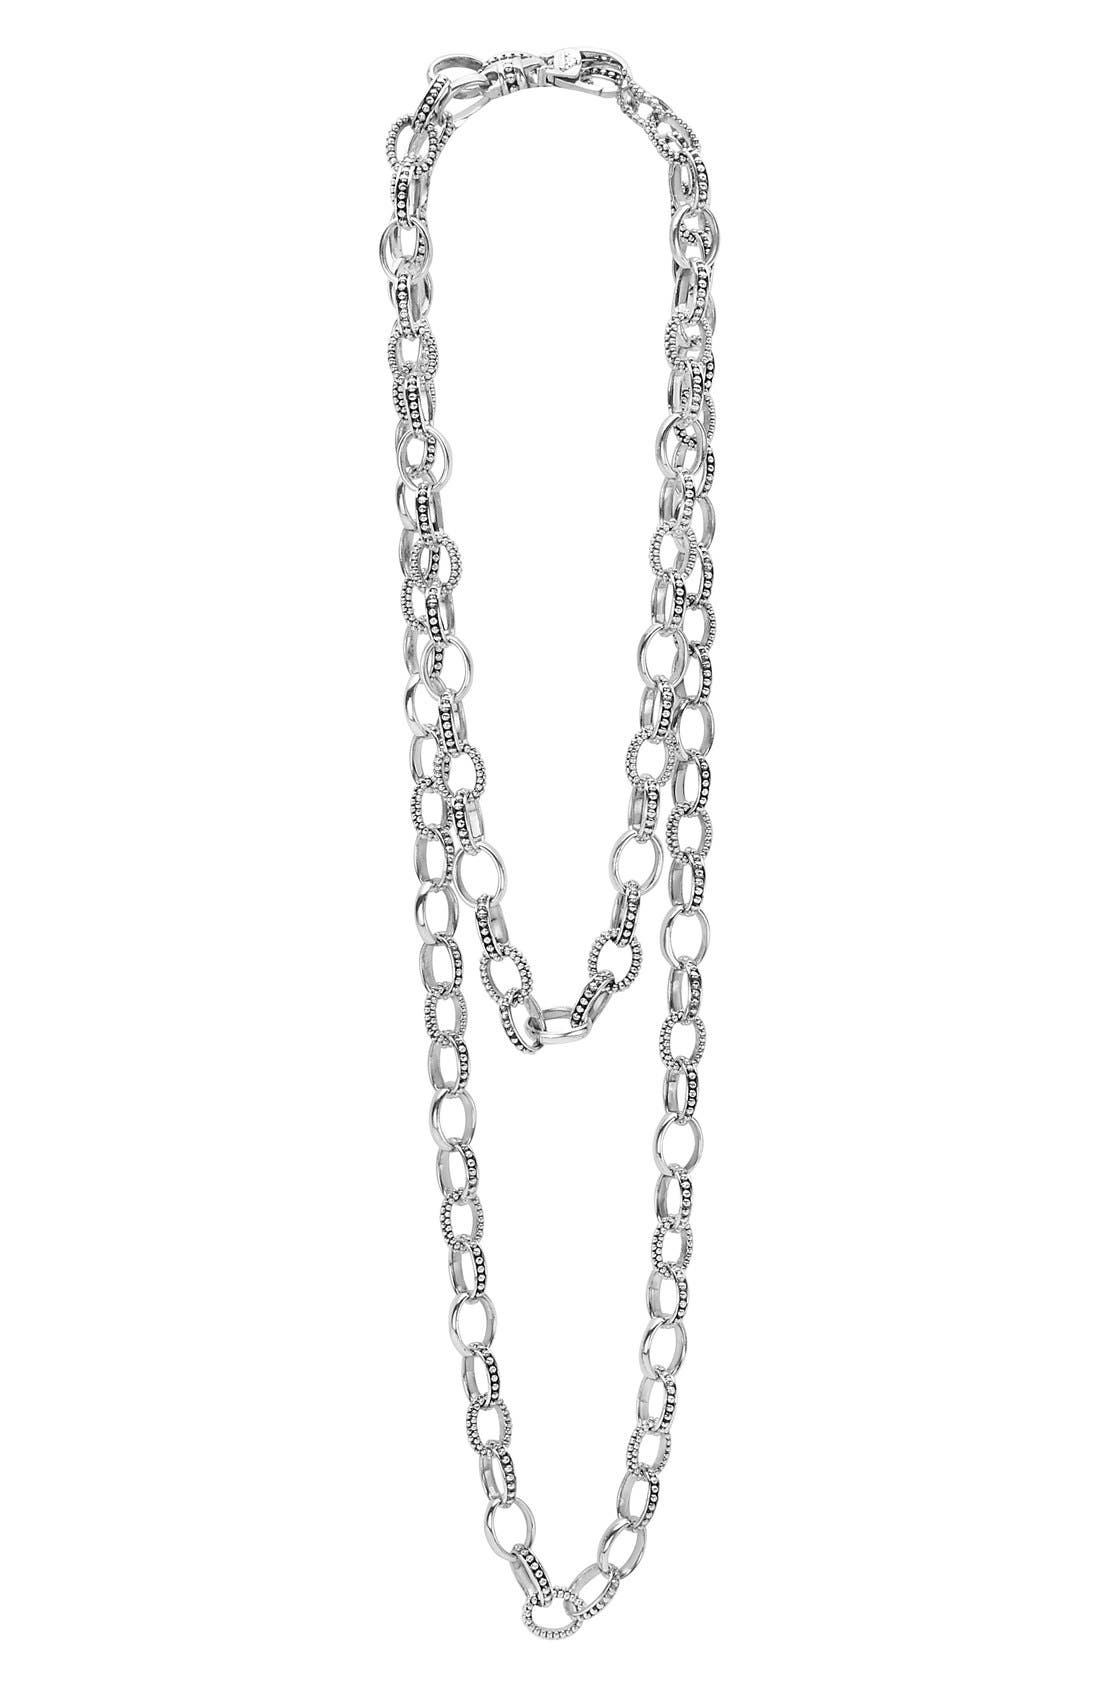 Alternate Image 1 Selected - LAGOS 'Link' Caviar Chain Necklace